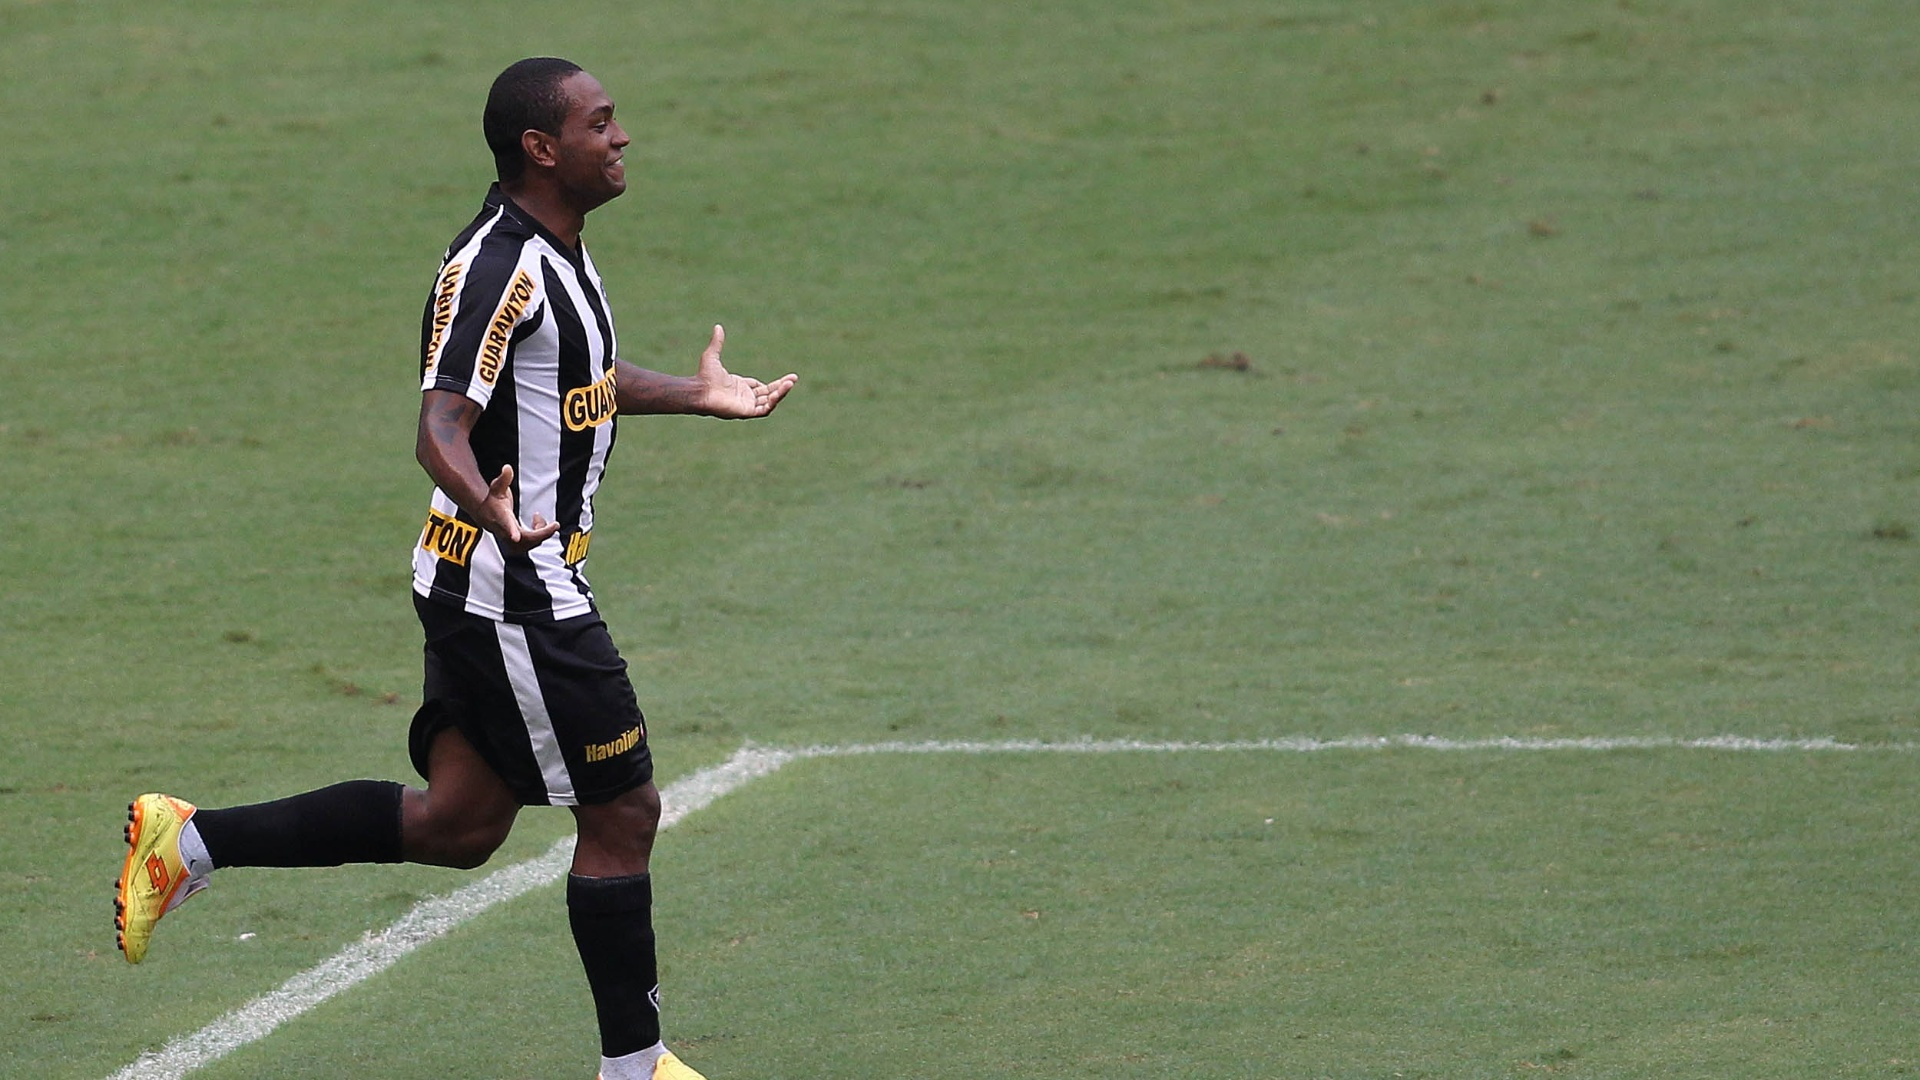 Jobson comemora gol pelo Botafogo no Engenho